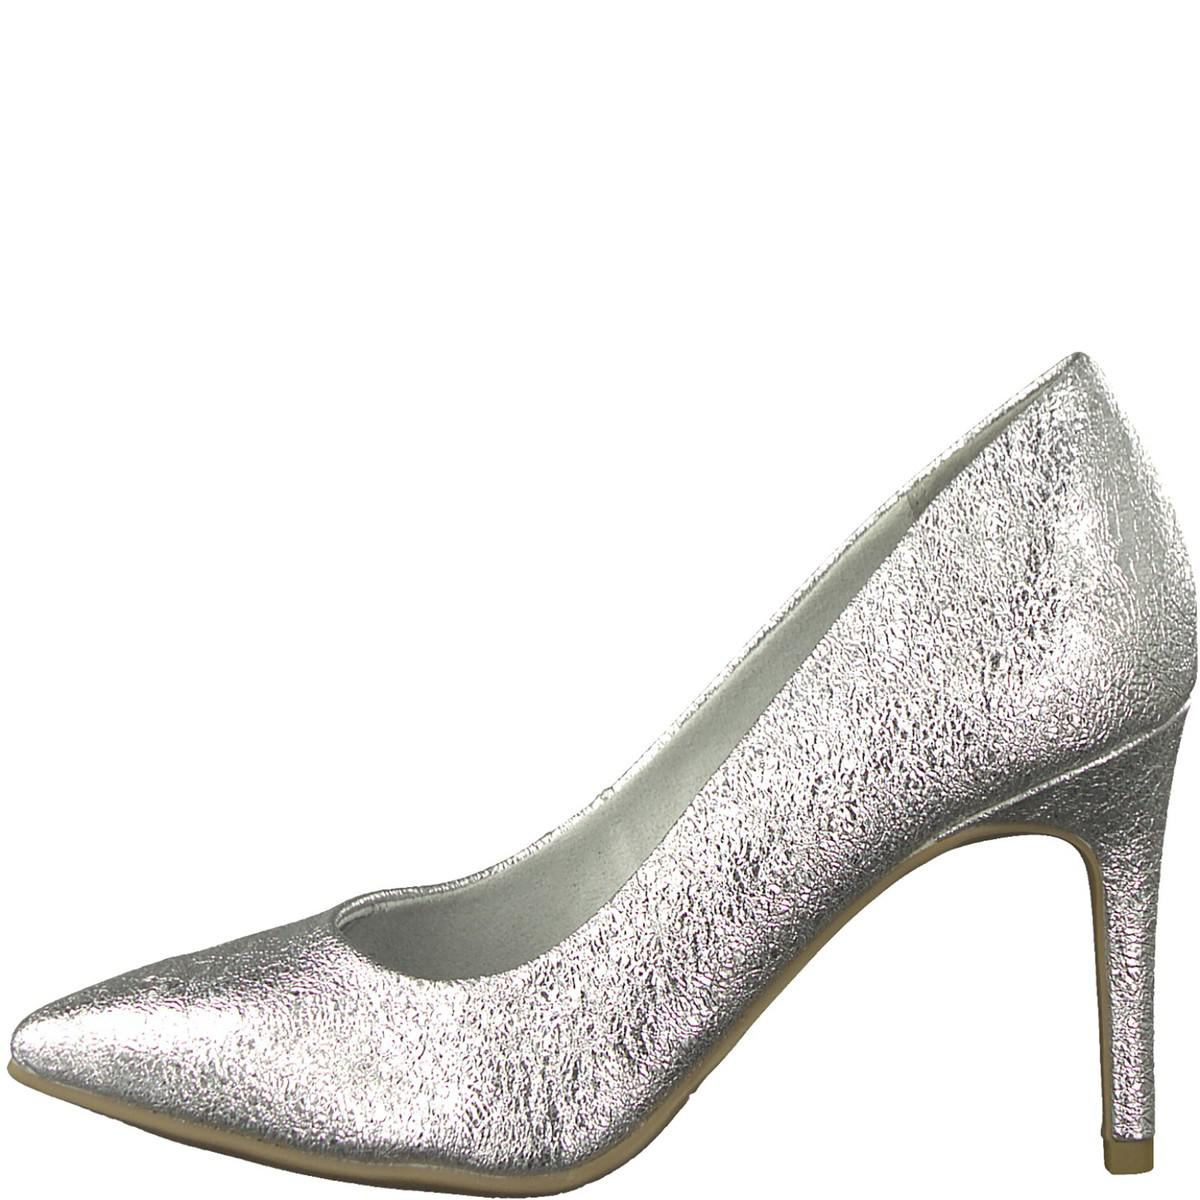 buy cheap outlet store TAMARIS Maia Stilettos clearance browse clearance great deals dsGHMJqPw